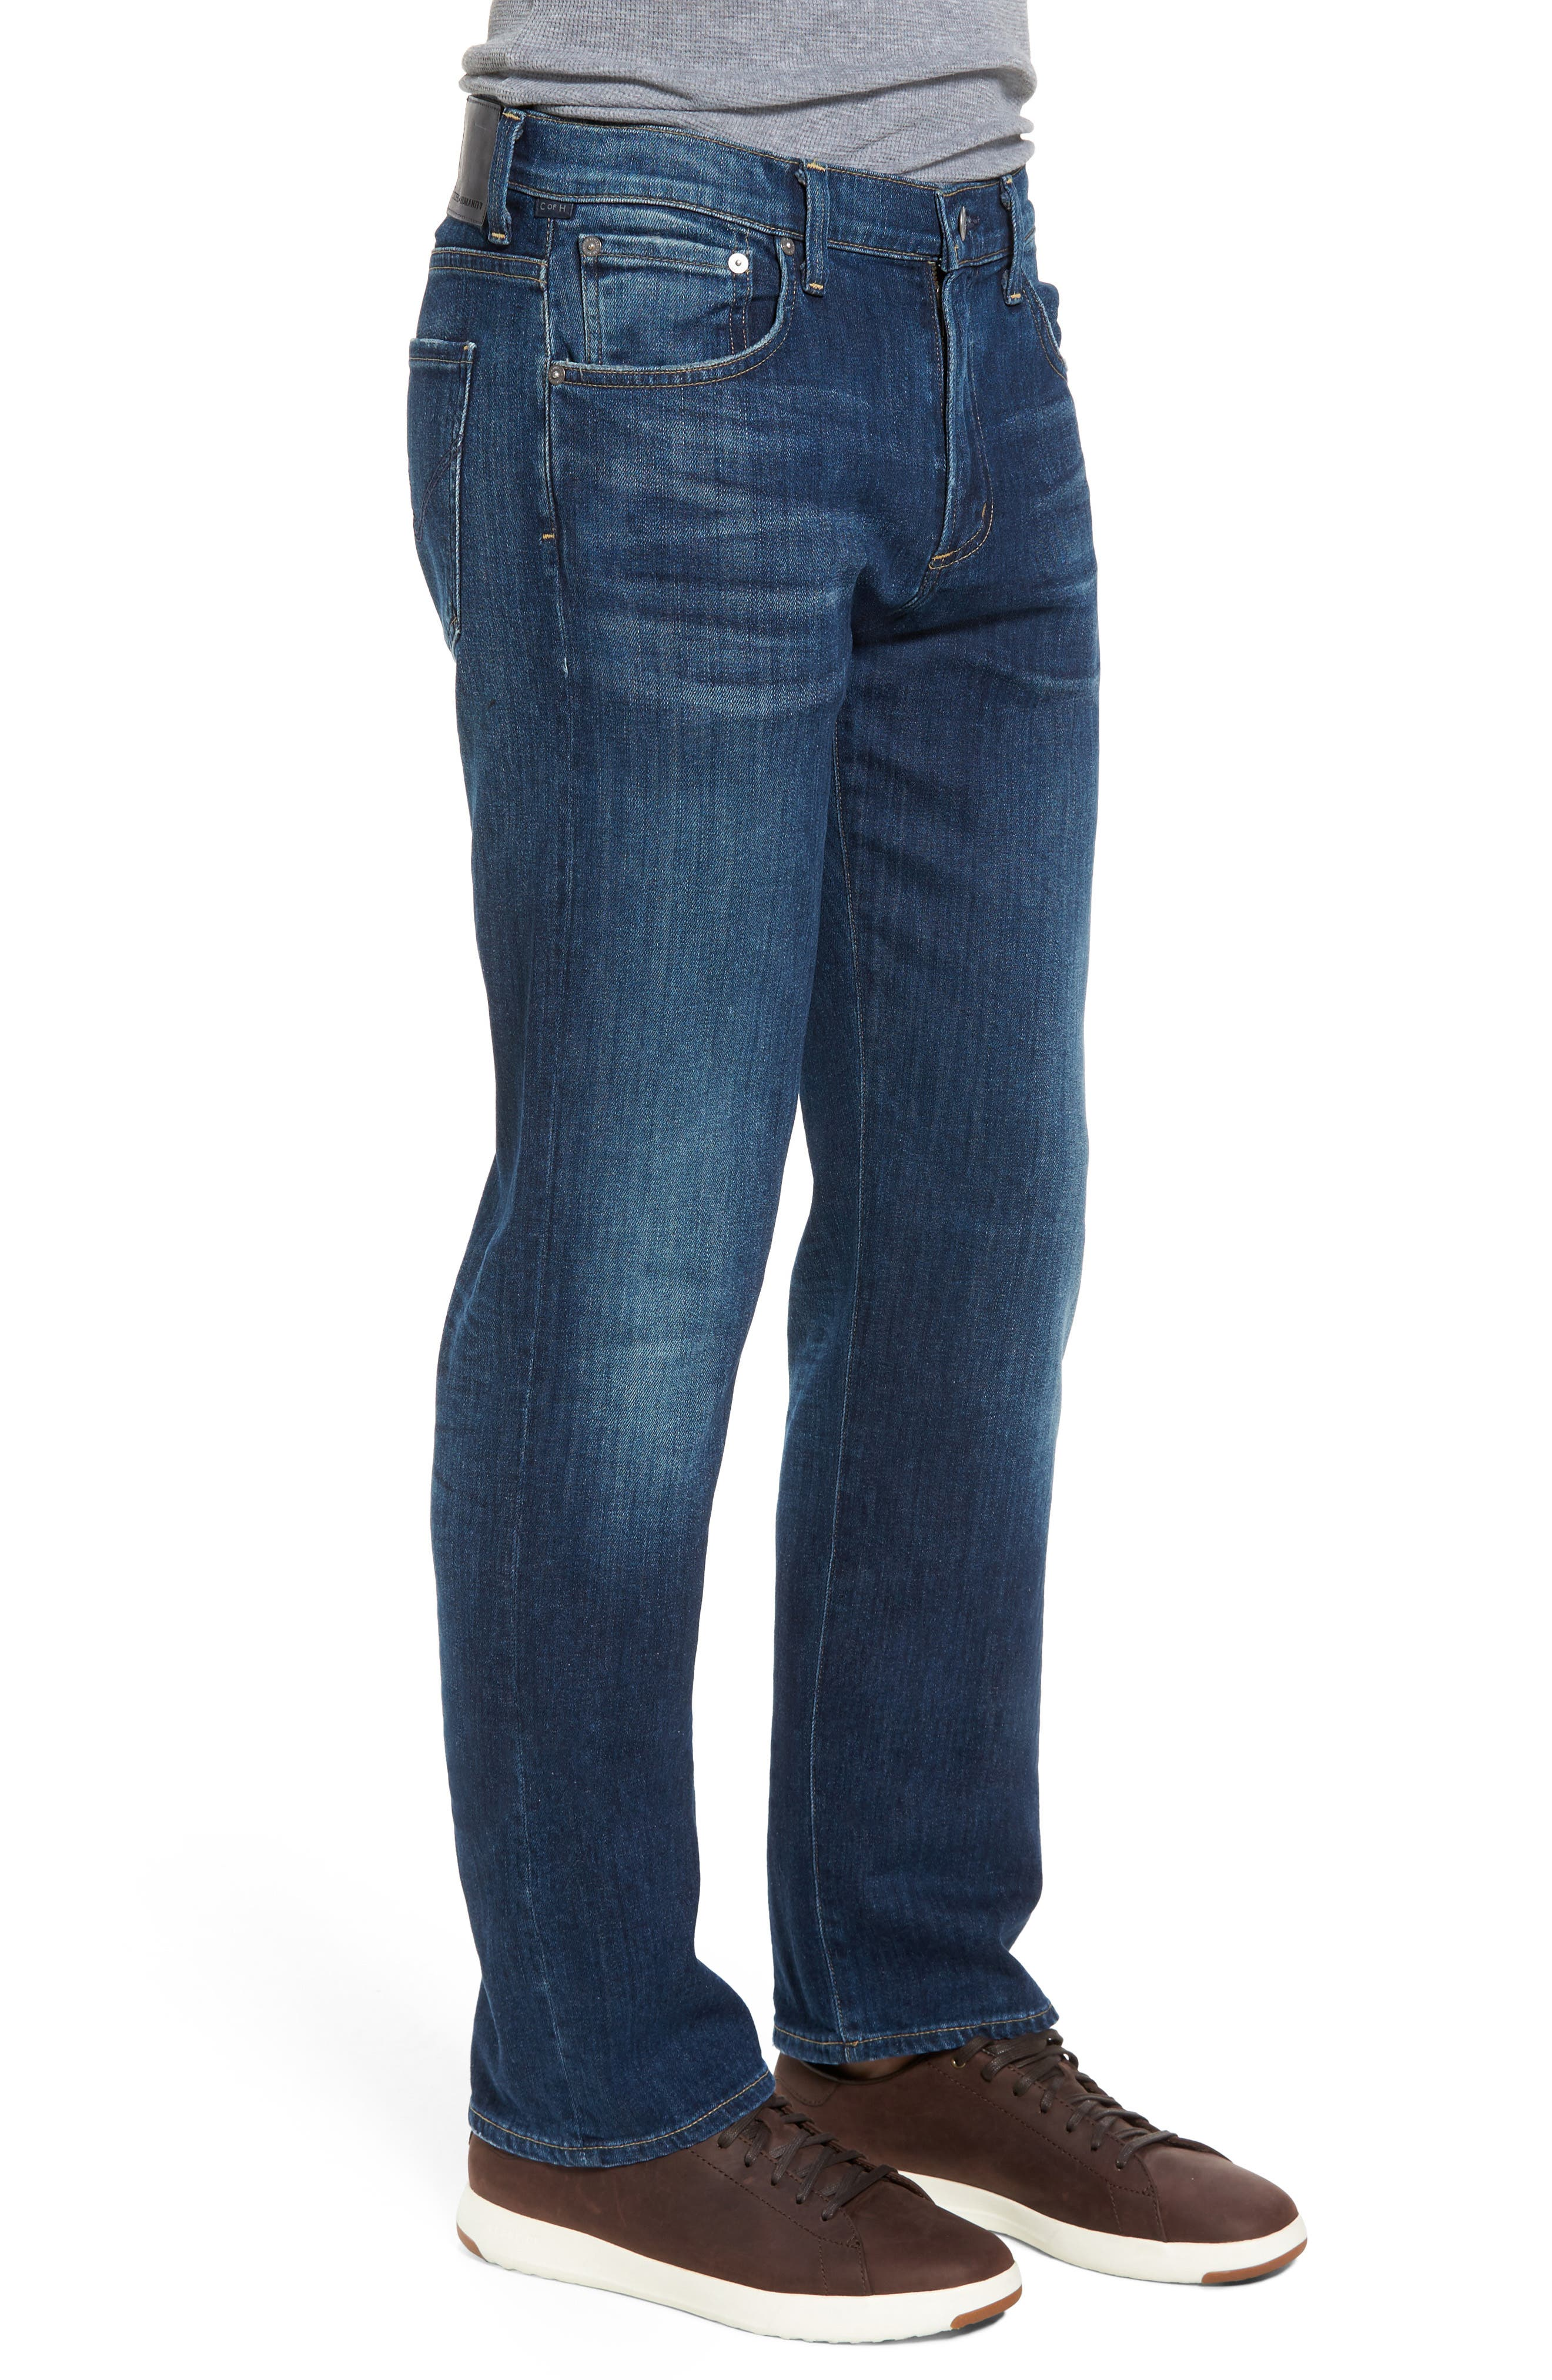 Sid Straight Fit Jeans,                             Alternate thumbnail 3, color,                             410